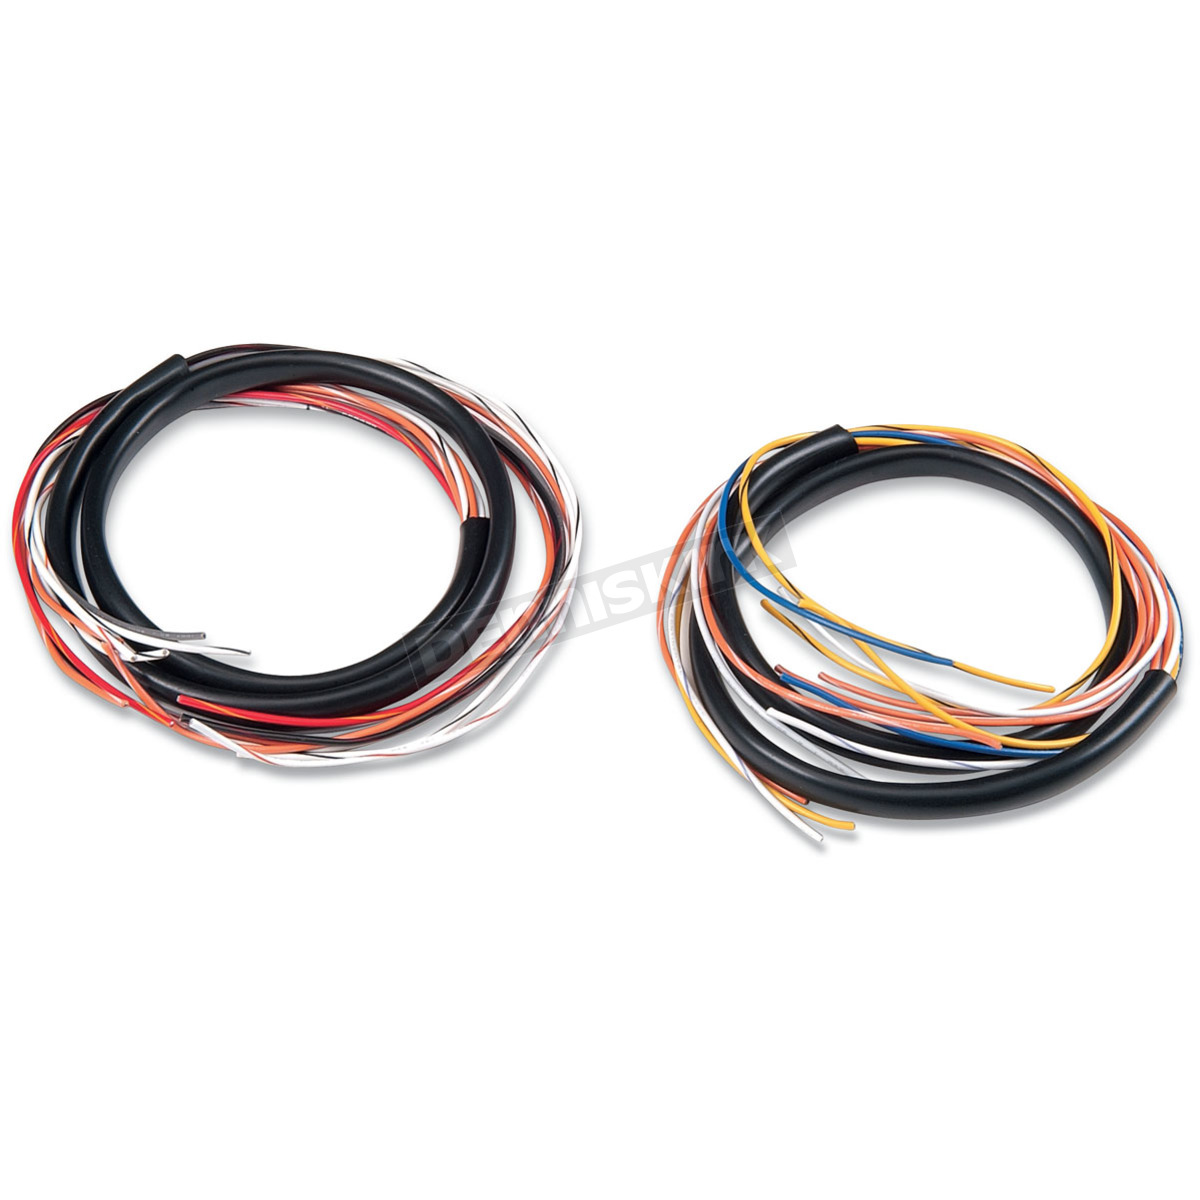 hight resolution of alloy art extended handlebar wiring harness 36 in sin 1